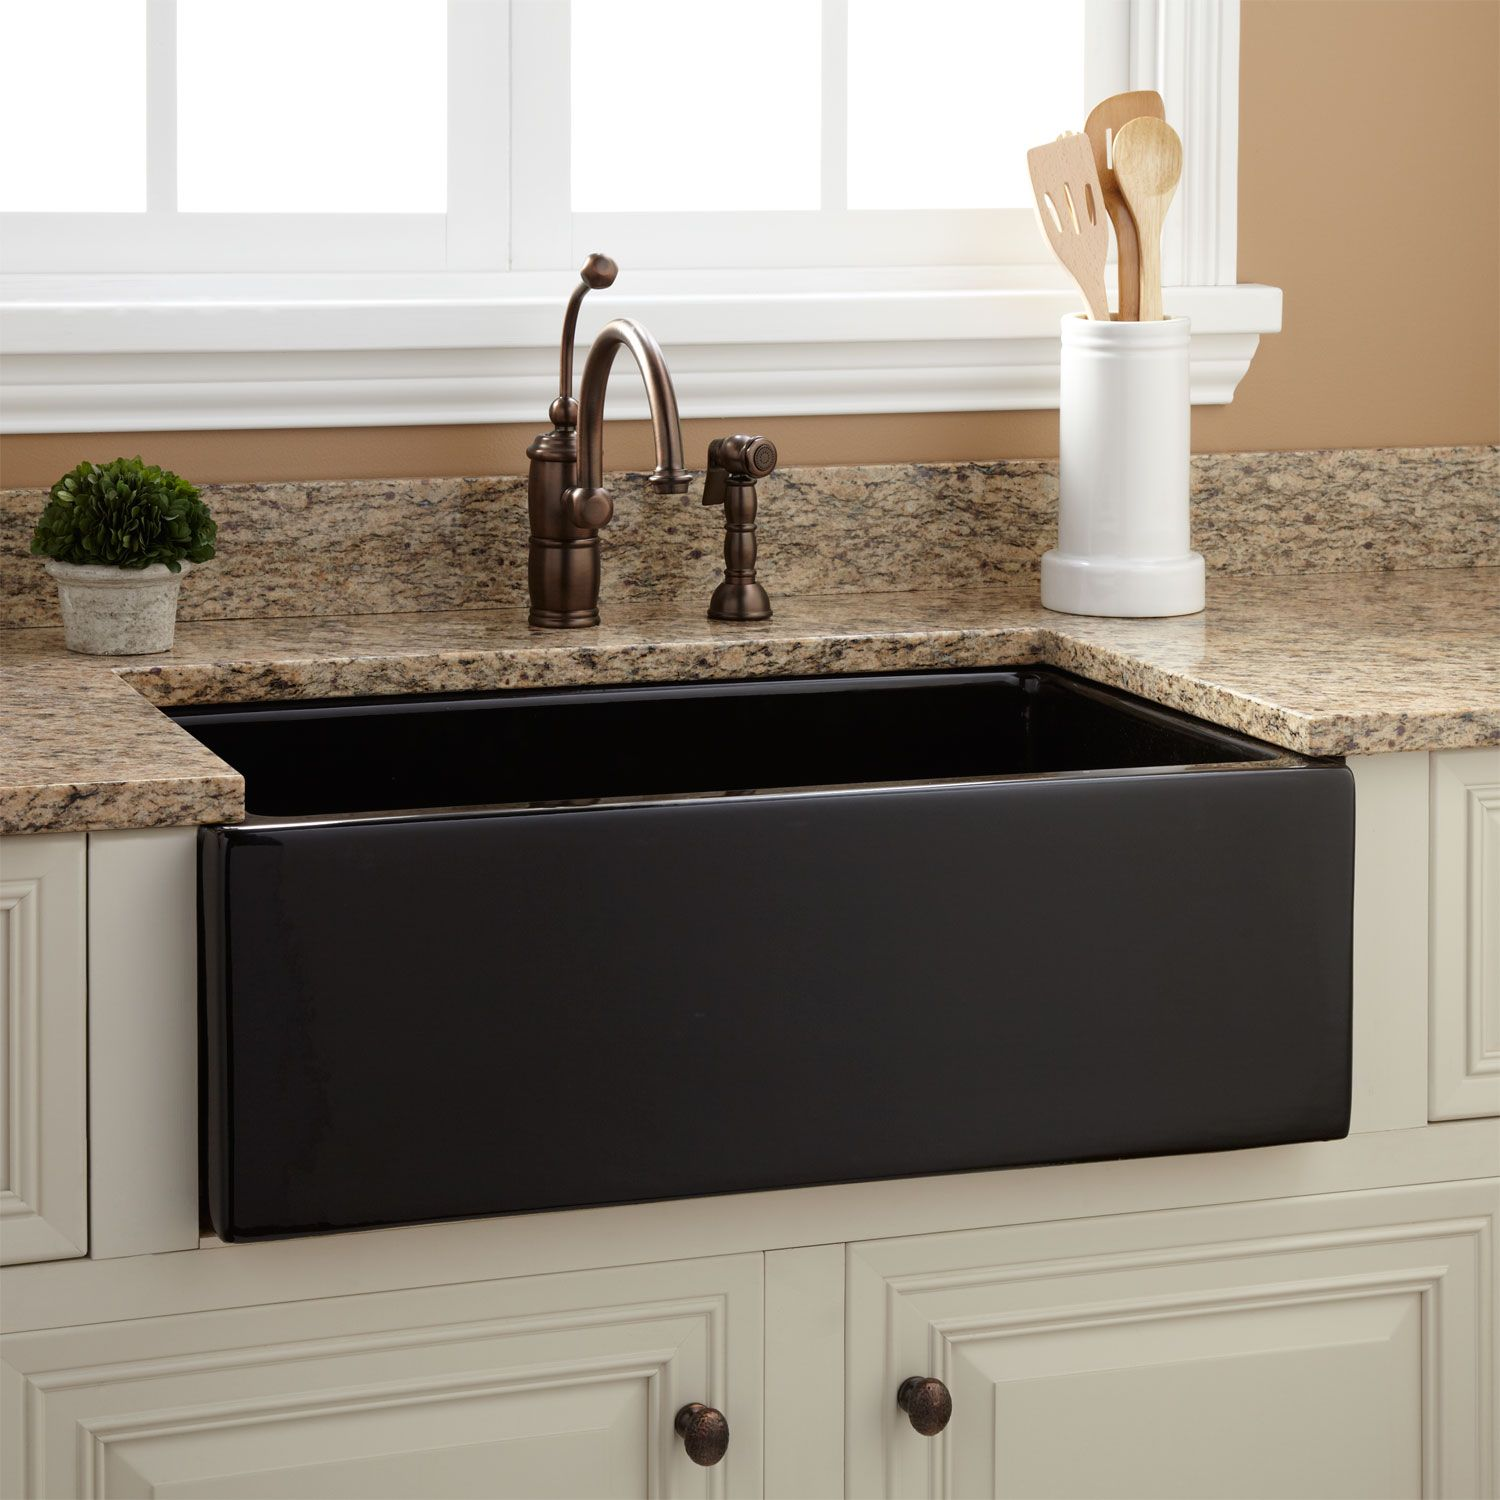 Country Kitchen Sinks French Table Marble The 25 43 Best Black Farmhouse Sink Ideas On Pinterest